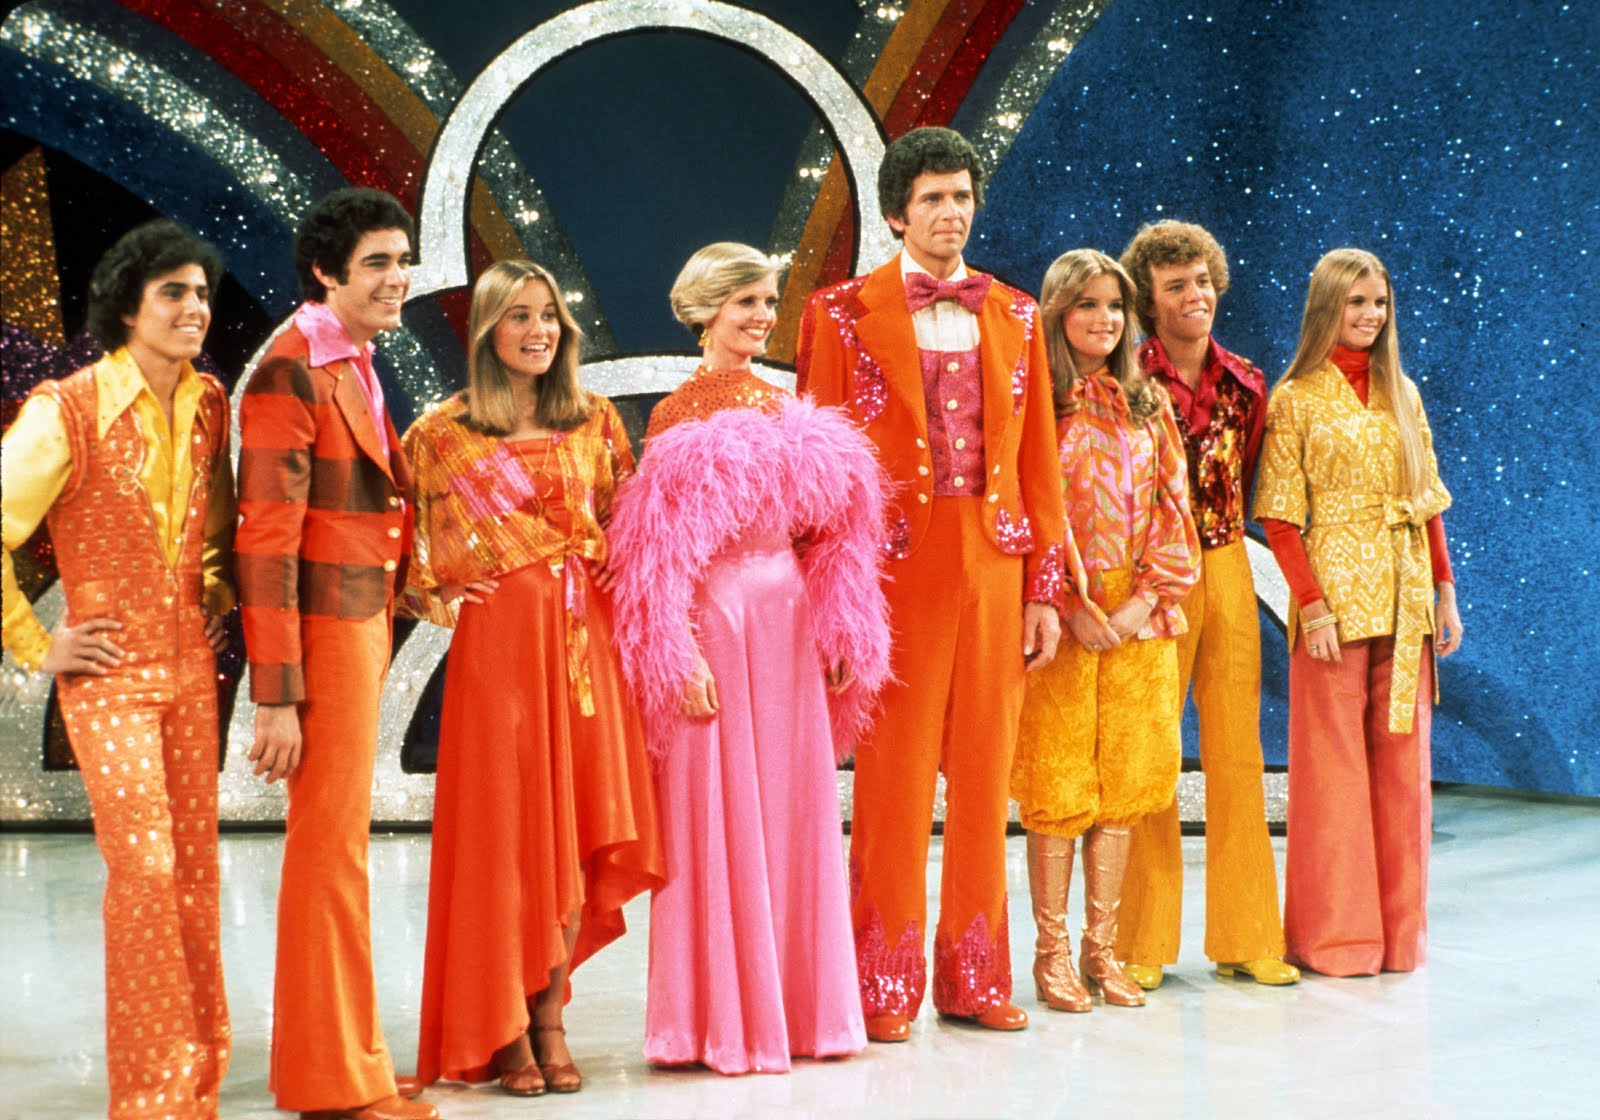 Solid Planet: 70's Disco Fashion